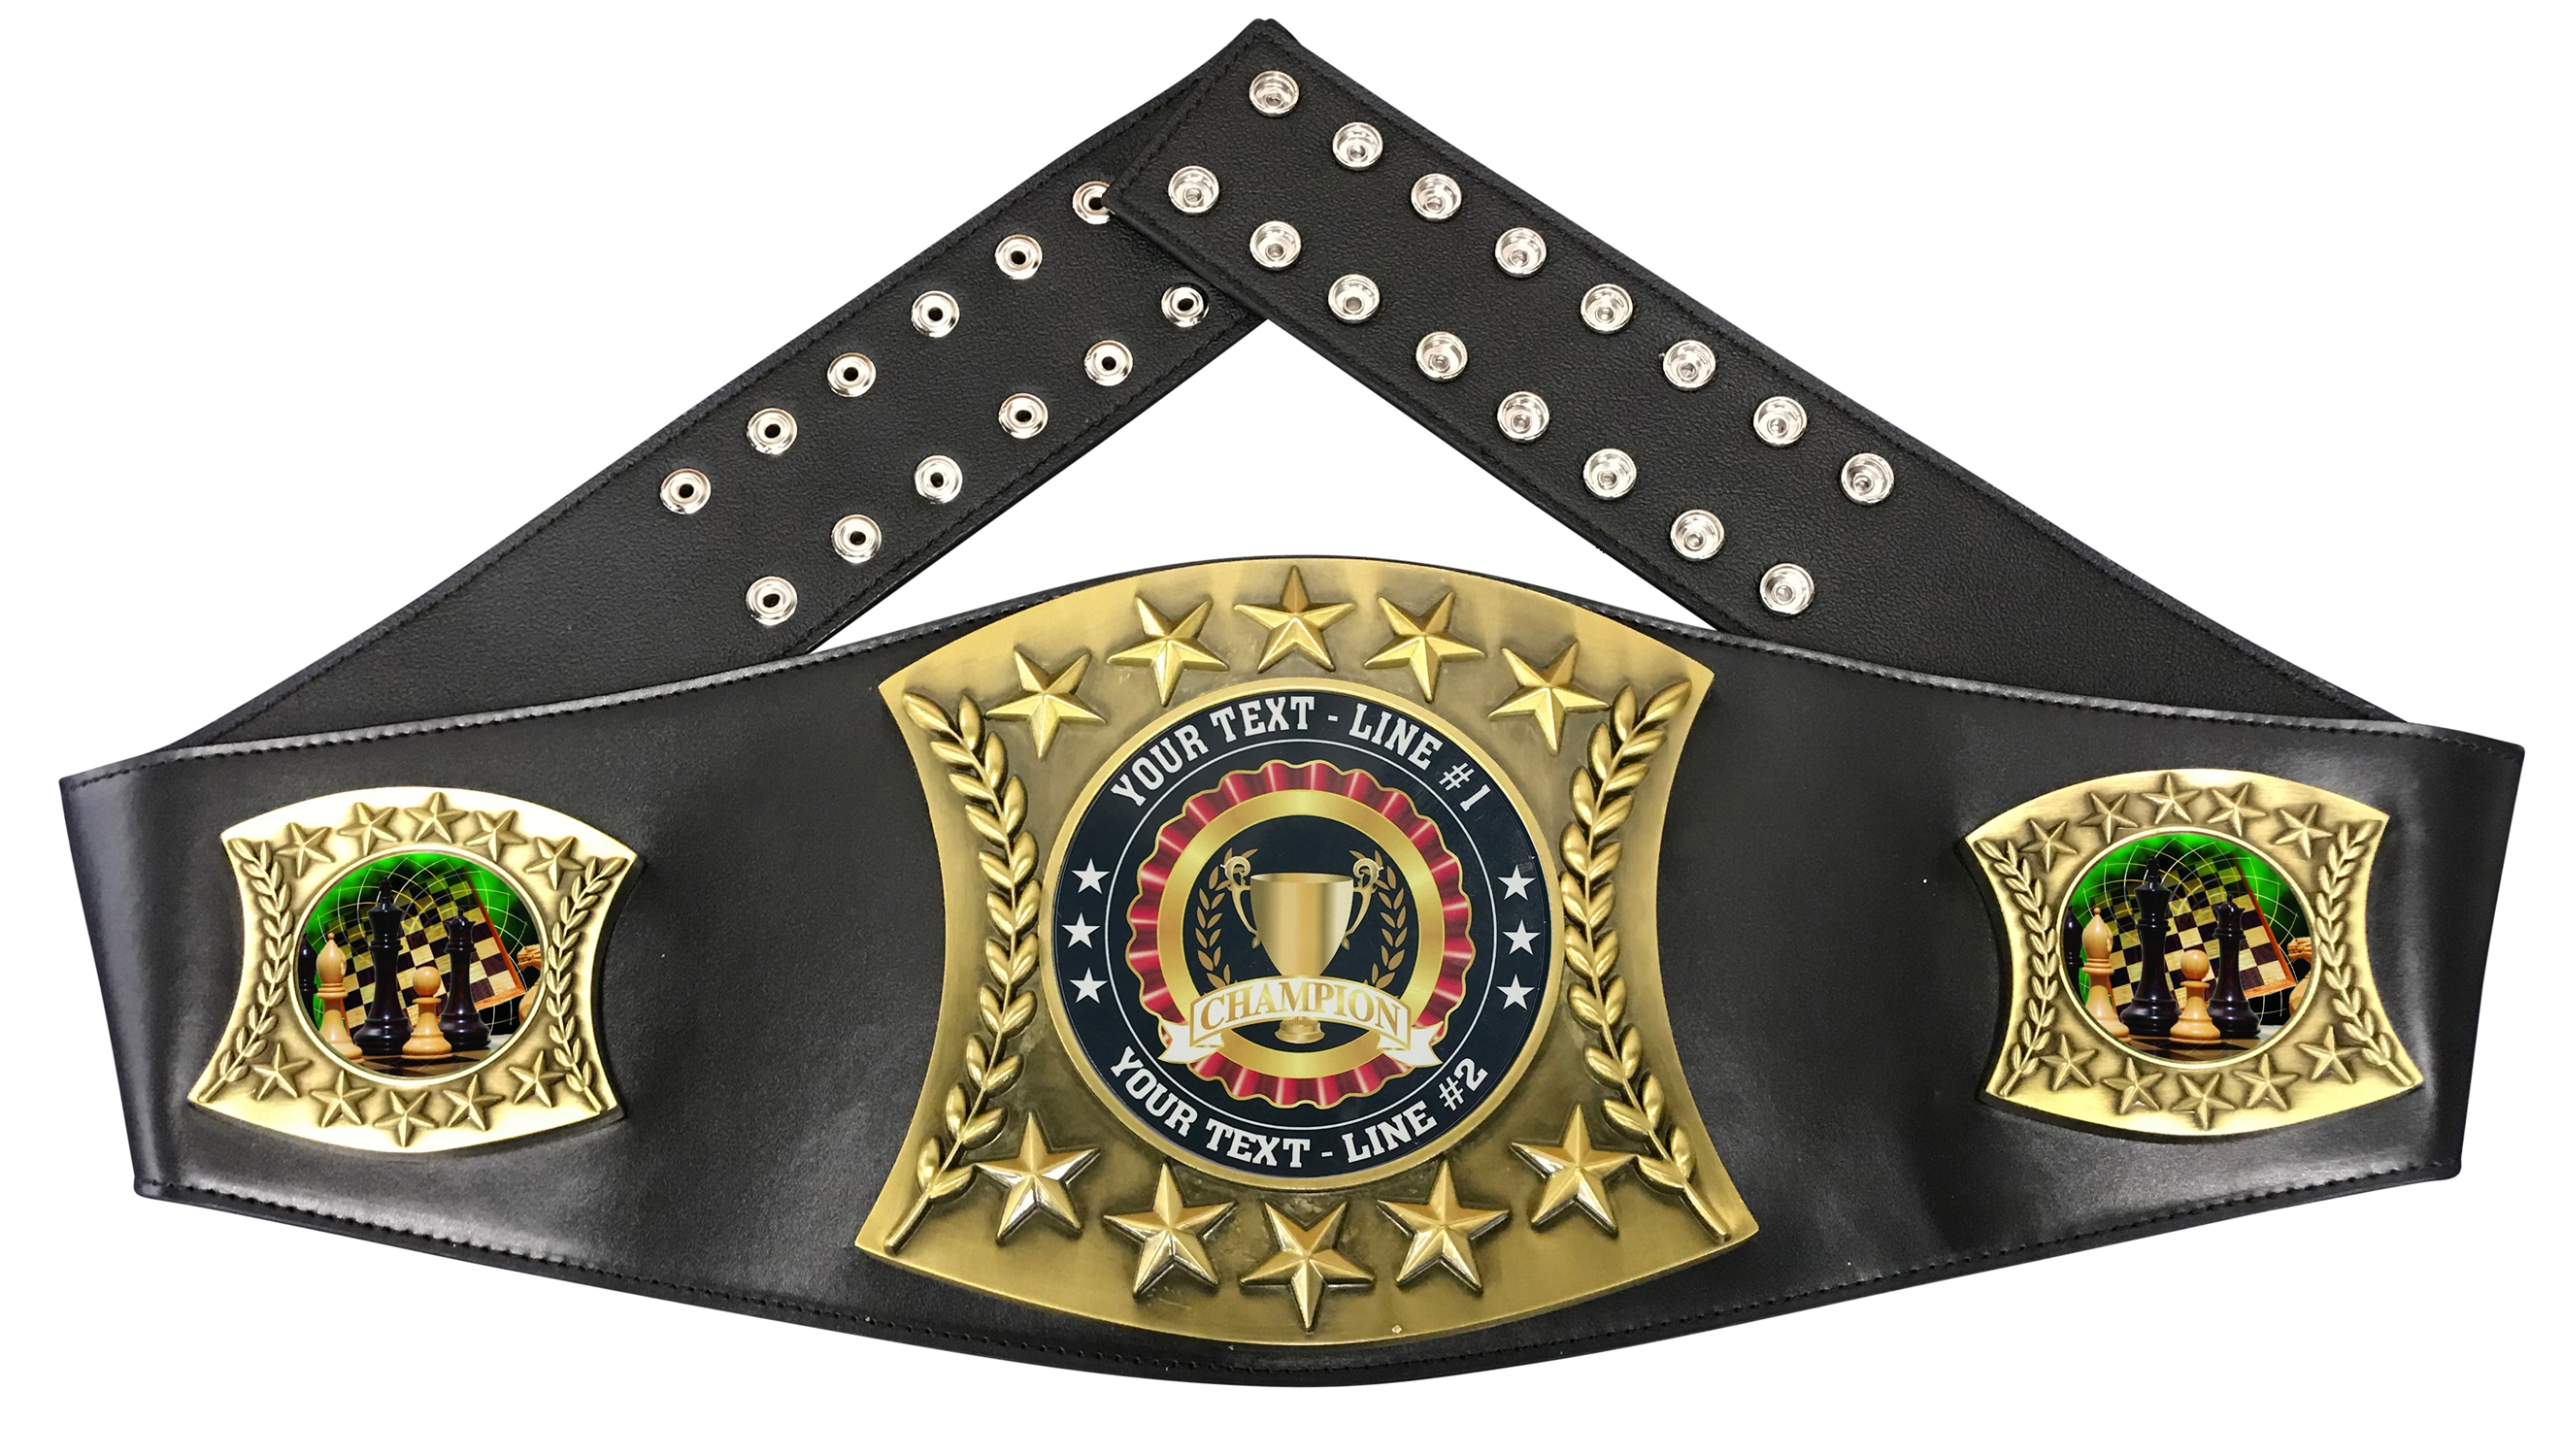 Chess Personalized Championship Belt